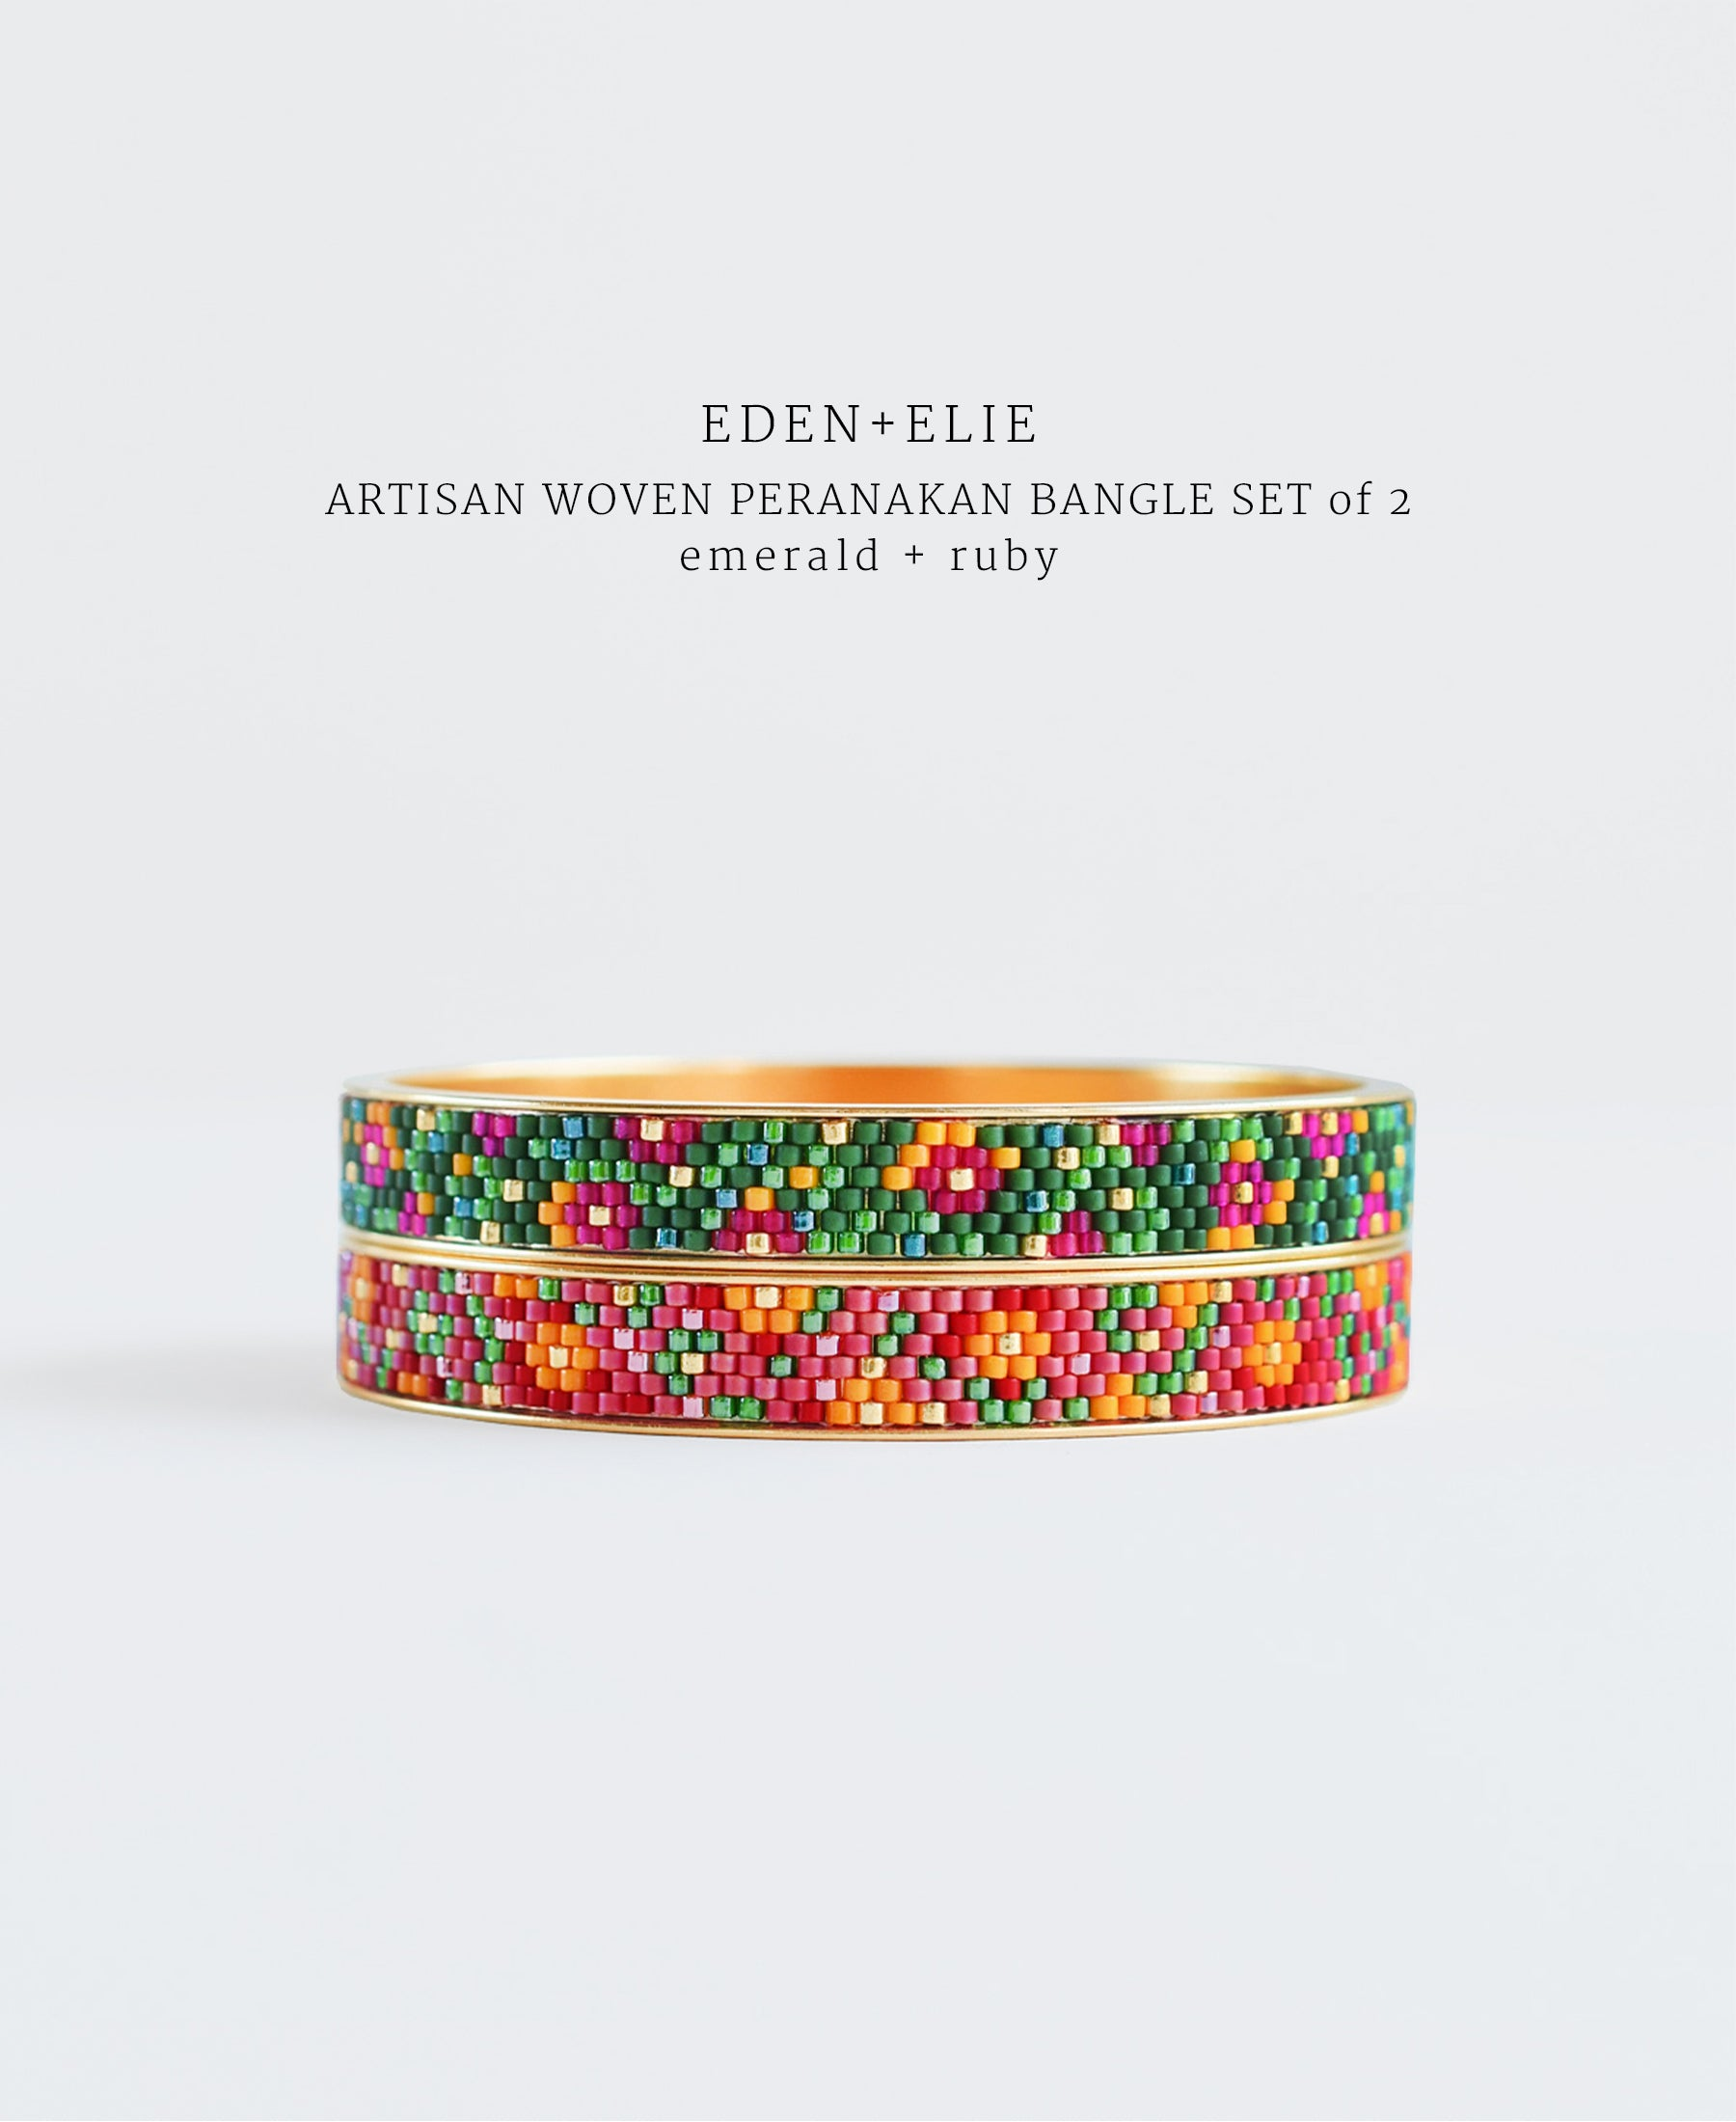 EDEN + ELIE Modern Peranakan gold narrow bangles set of 2 - emerald + ruby